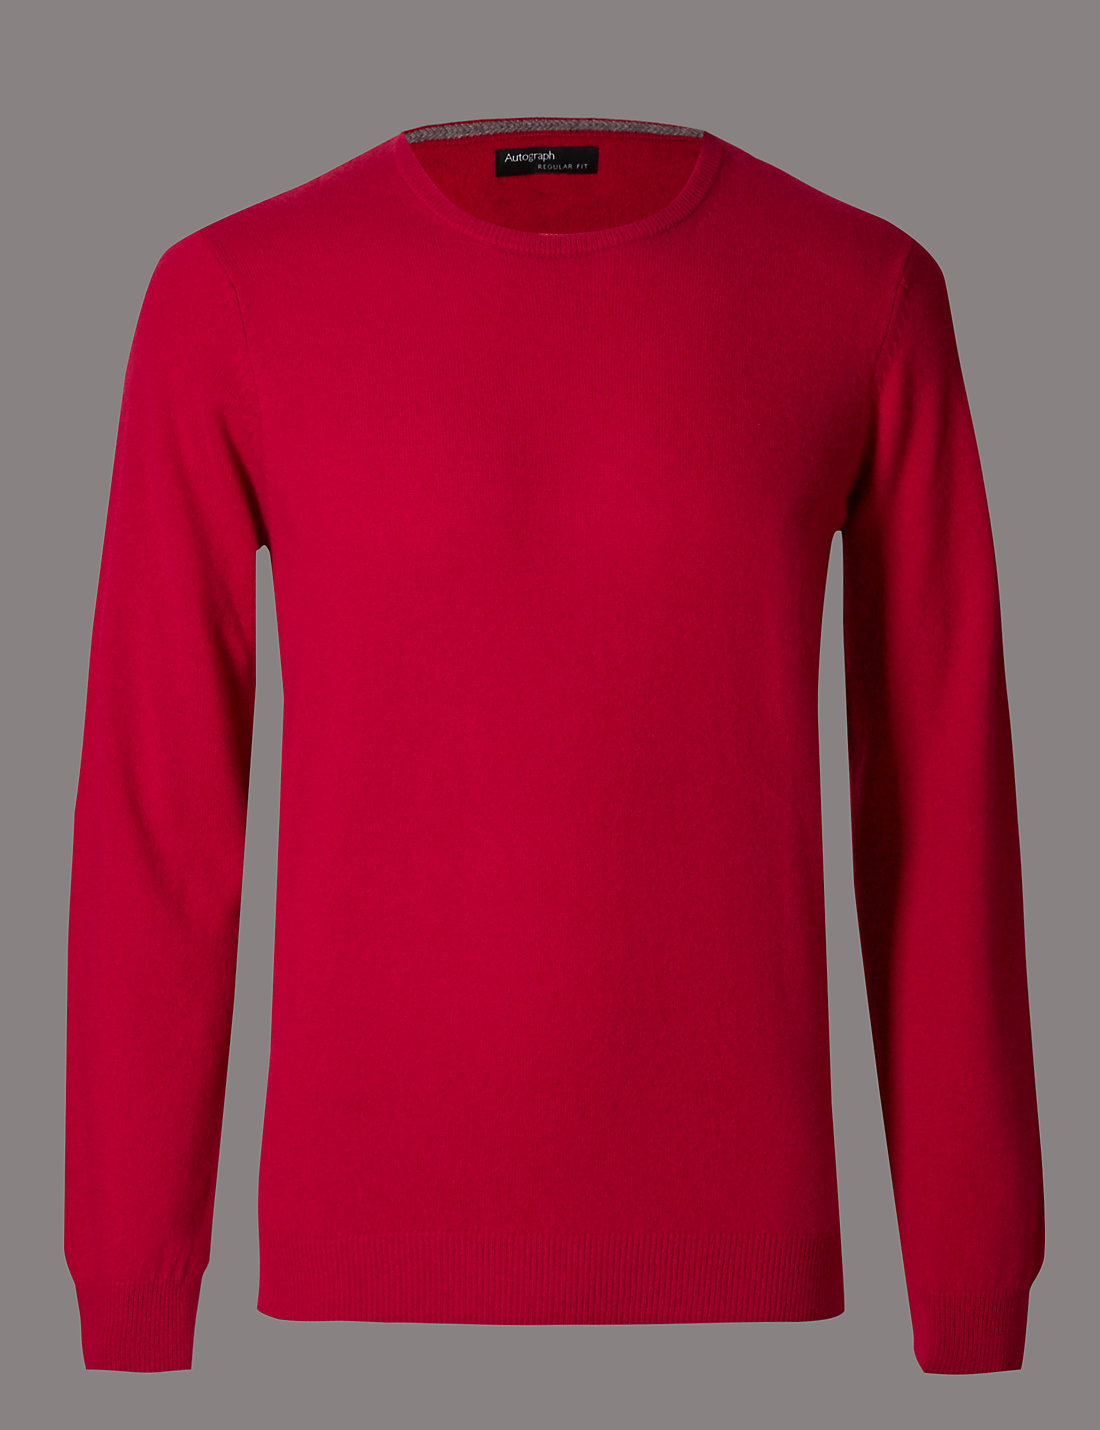 M/&S 100/% Pure Cashmere Cardigan  £89.00 Size 12 Pink BRAND NEW WITH TAGS